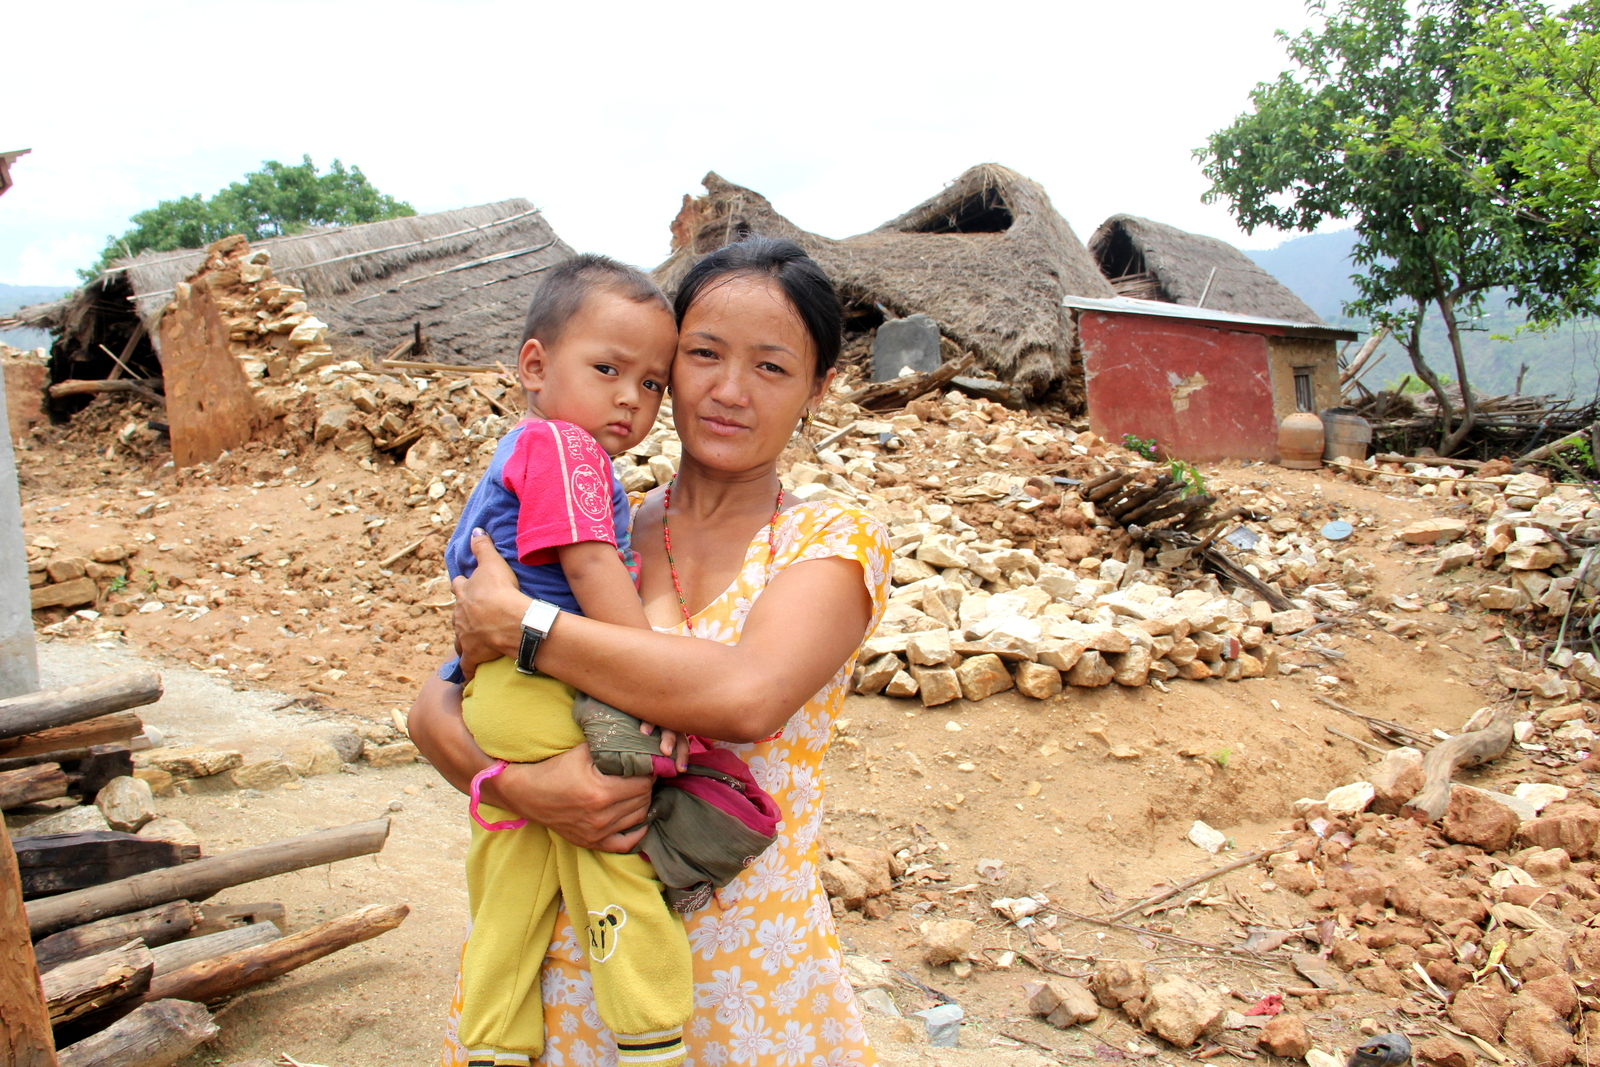 2015 Nepal earthquake: Facts, FAQs, and how to help | World